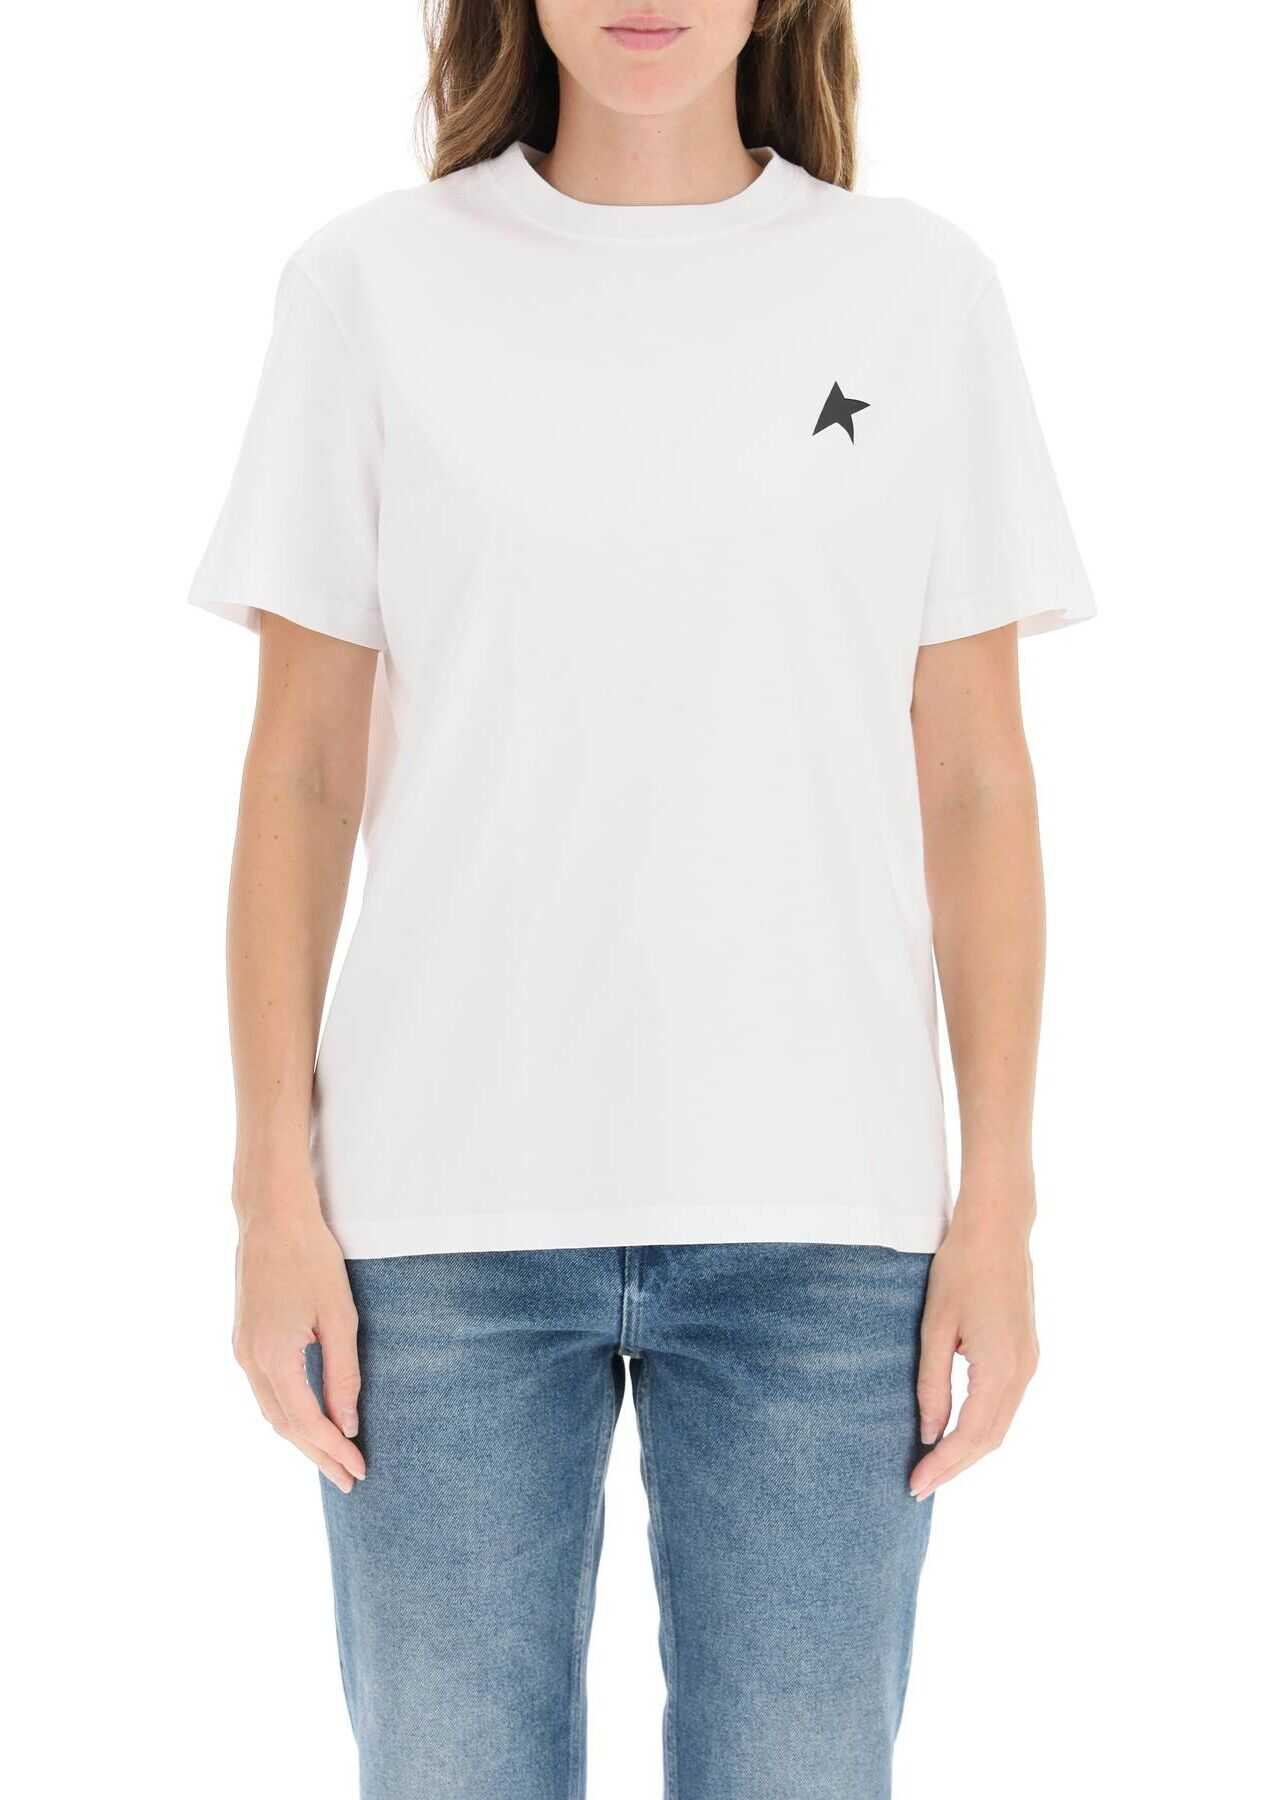 Golden Goose Star Collection T-Shirt With Star GWP00880 P000593 OPTIC WHITE BLACK image0